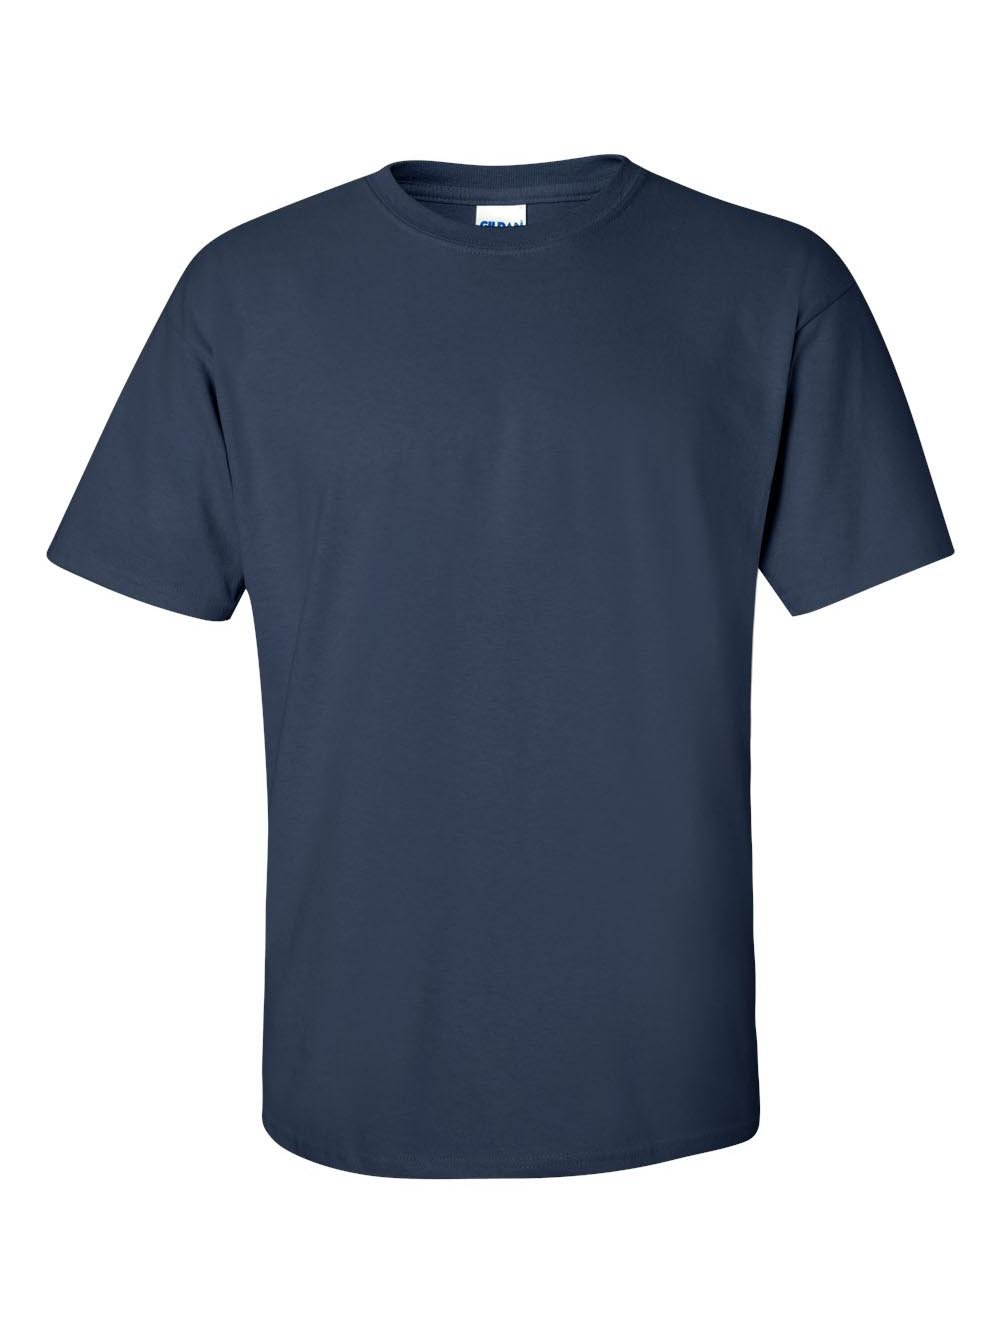 Gildan Men's Ultra Cotton Adult T-Shirt, 2-Pack, Navy, X-Large